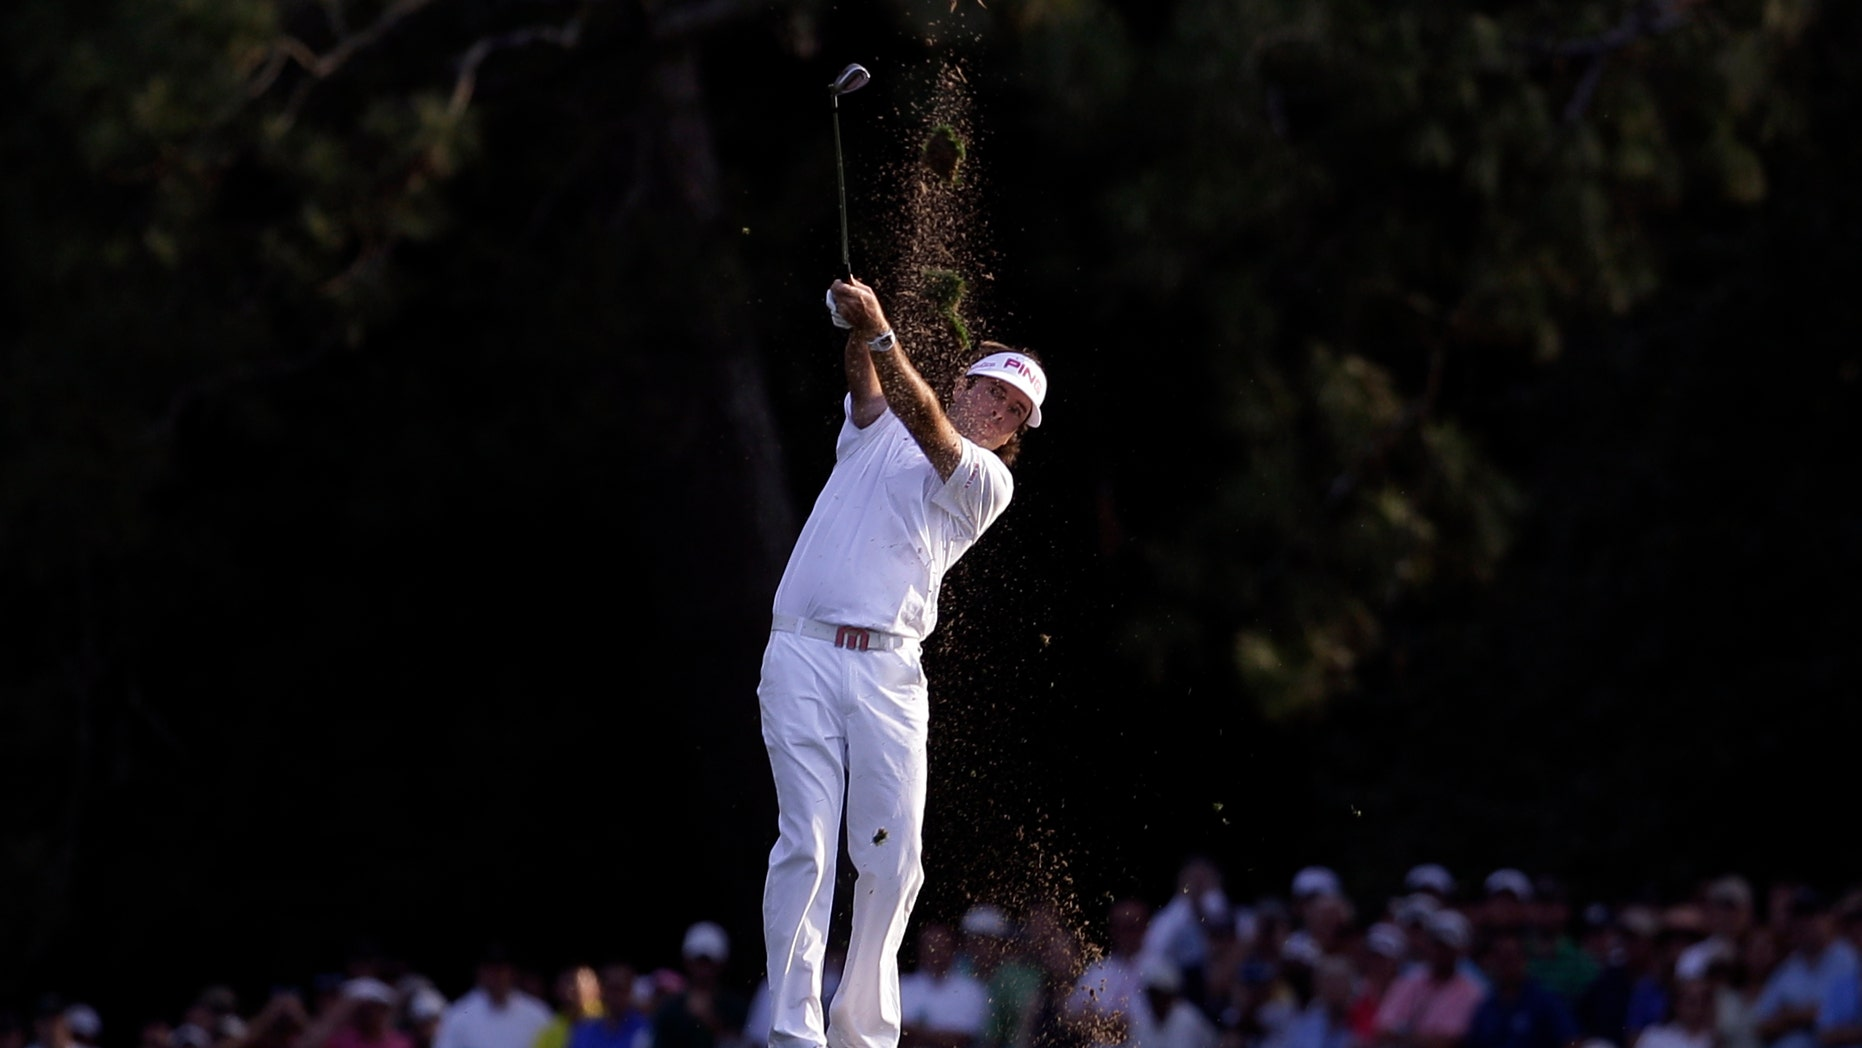 Bubba Watson hits off the 18th fairway during the fourth round of the Masters golf tournament Sunday, April 8, 2012, in Augusta, Ga. (AP Photo/David J. Phillip)